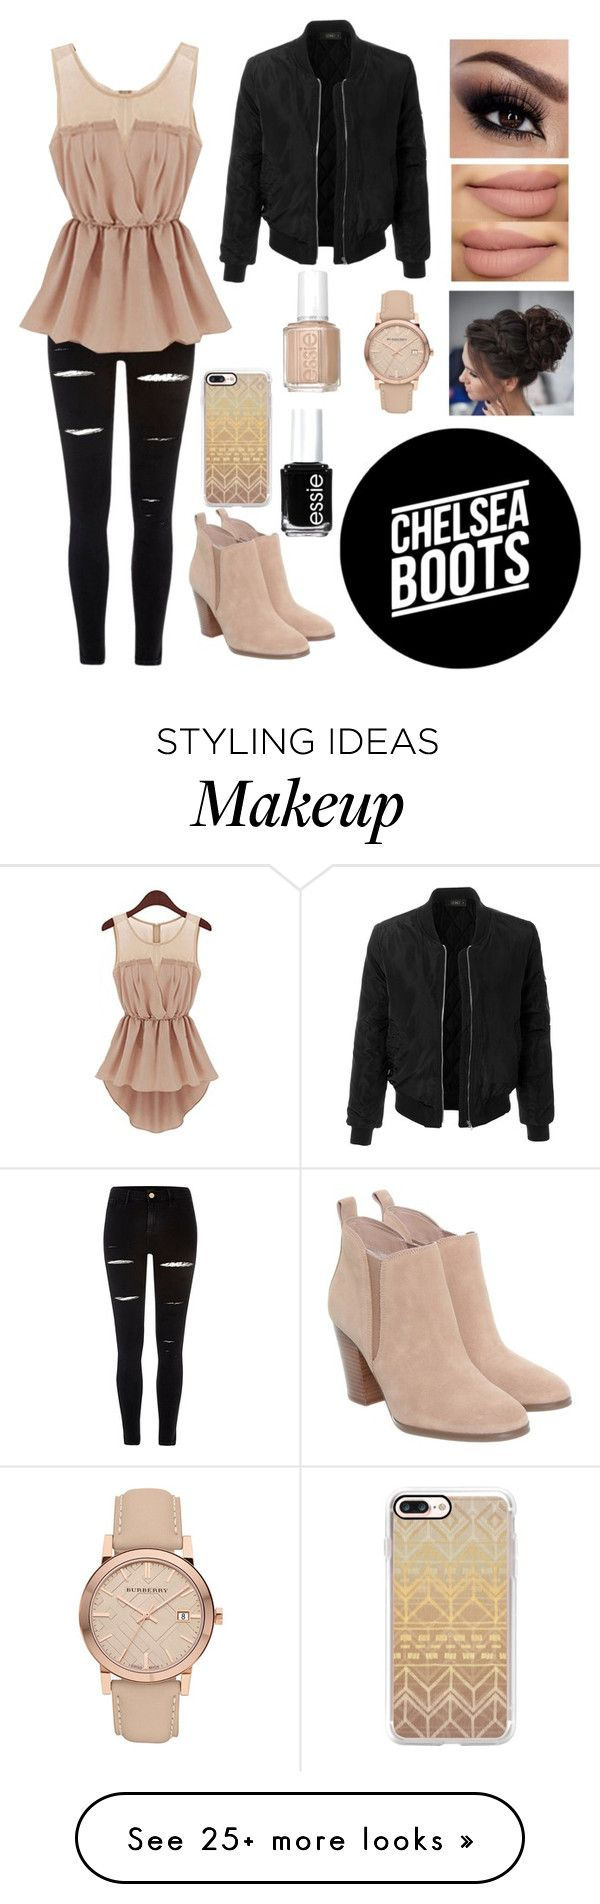 """# Rebel Beauty"" by divaqueen2002 on Polyvore featuring River Island, Michael Kors, LE3NO, Casetify, Essie and Burberry"